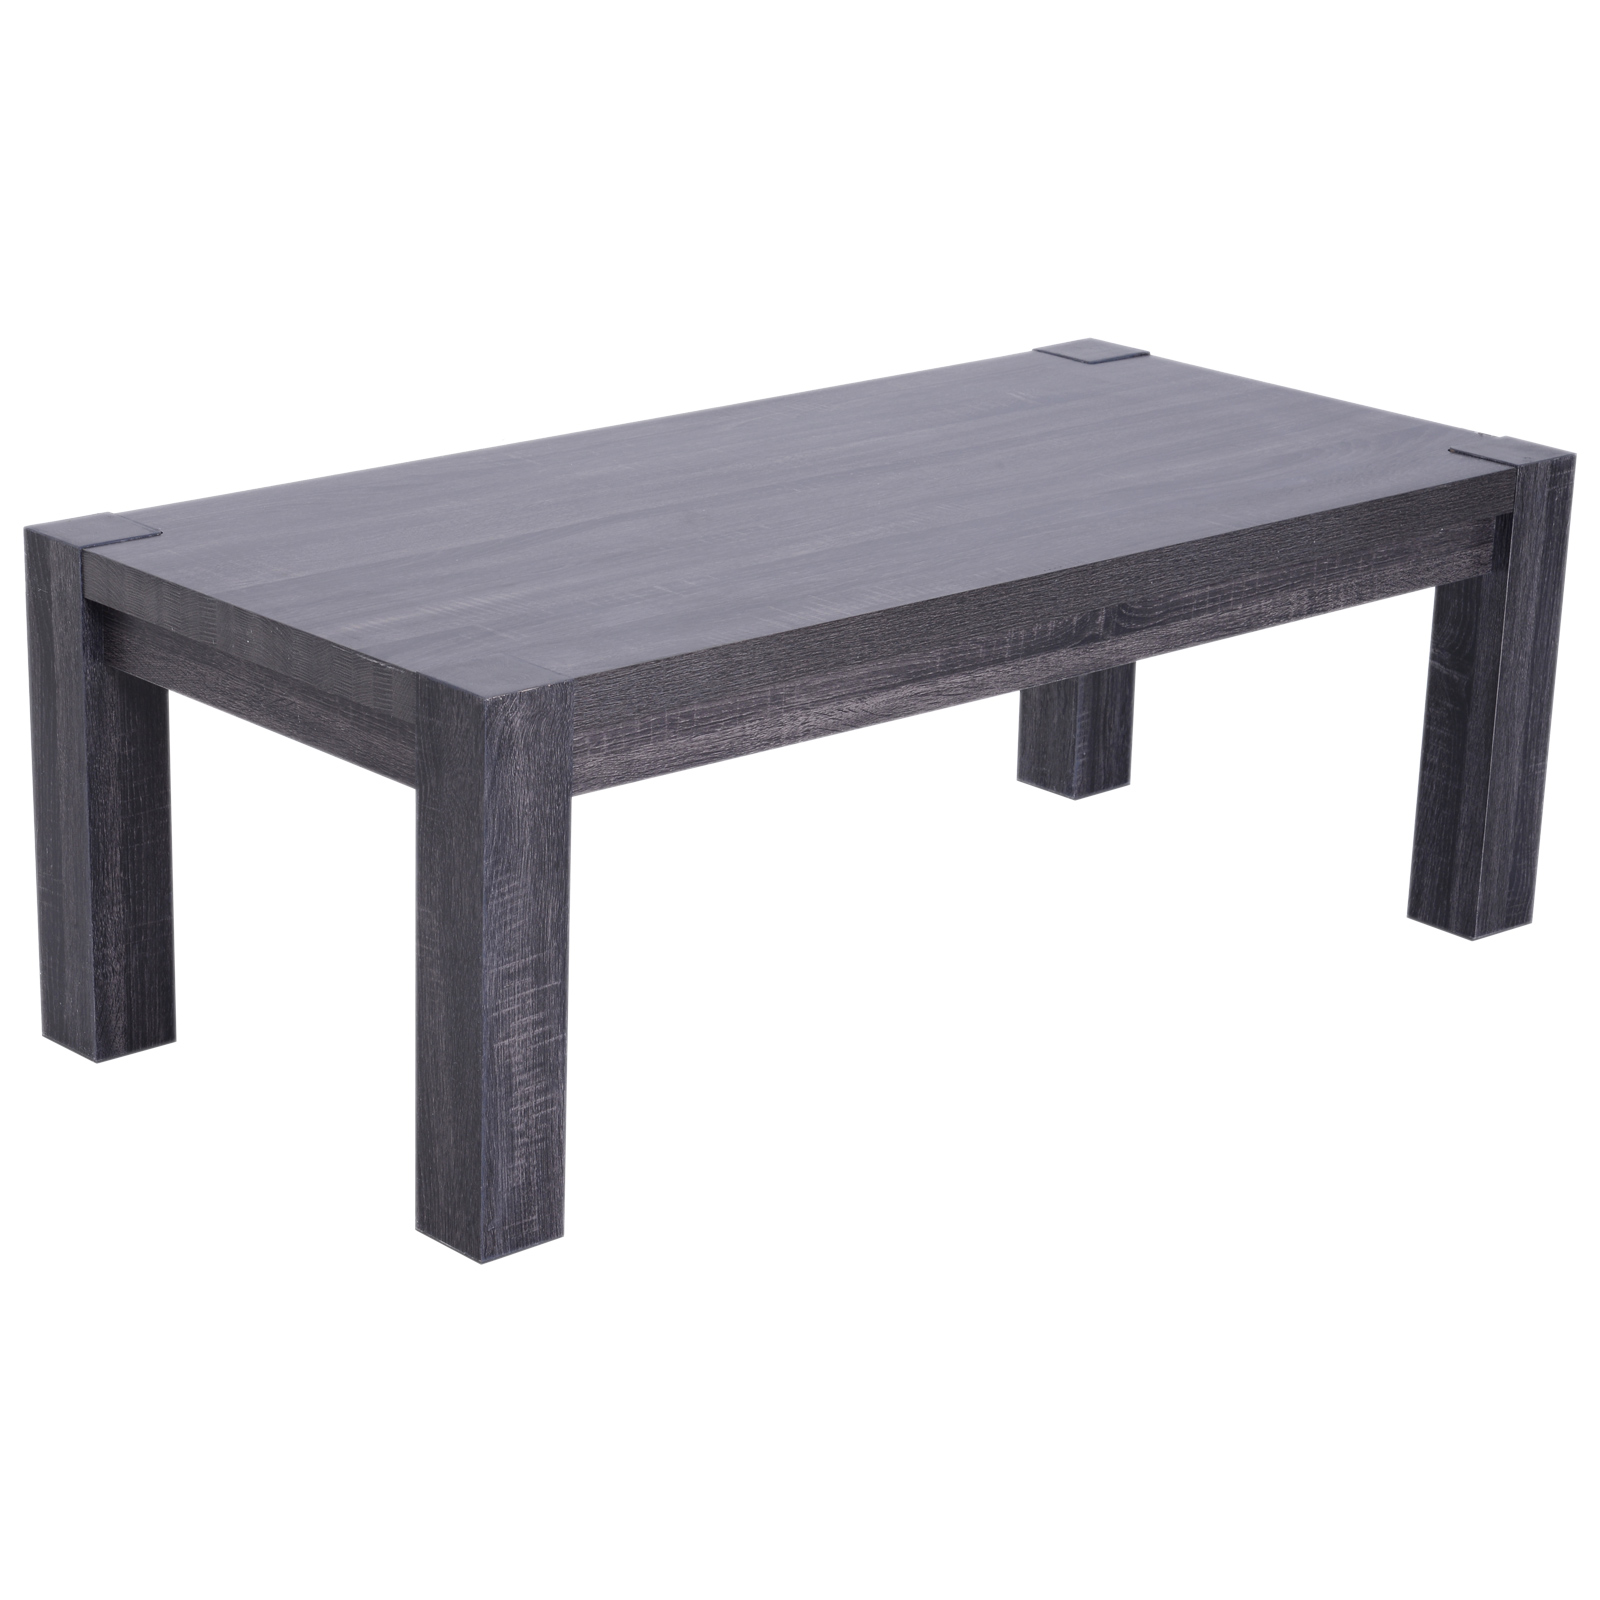 HOMCOM Coffee Table Modern Design Living Room Living Room Wood 120x59x45 Cm Black